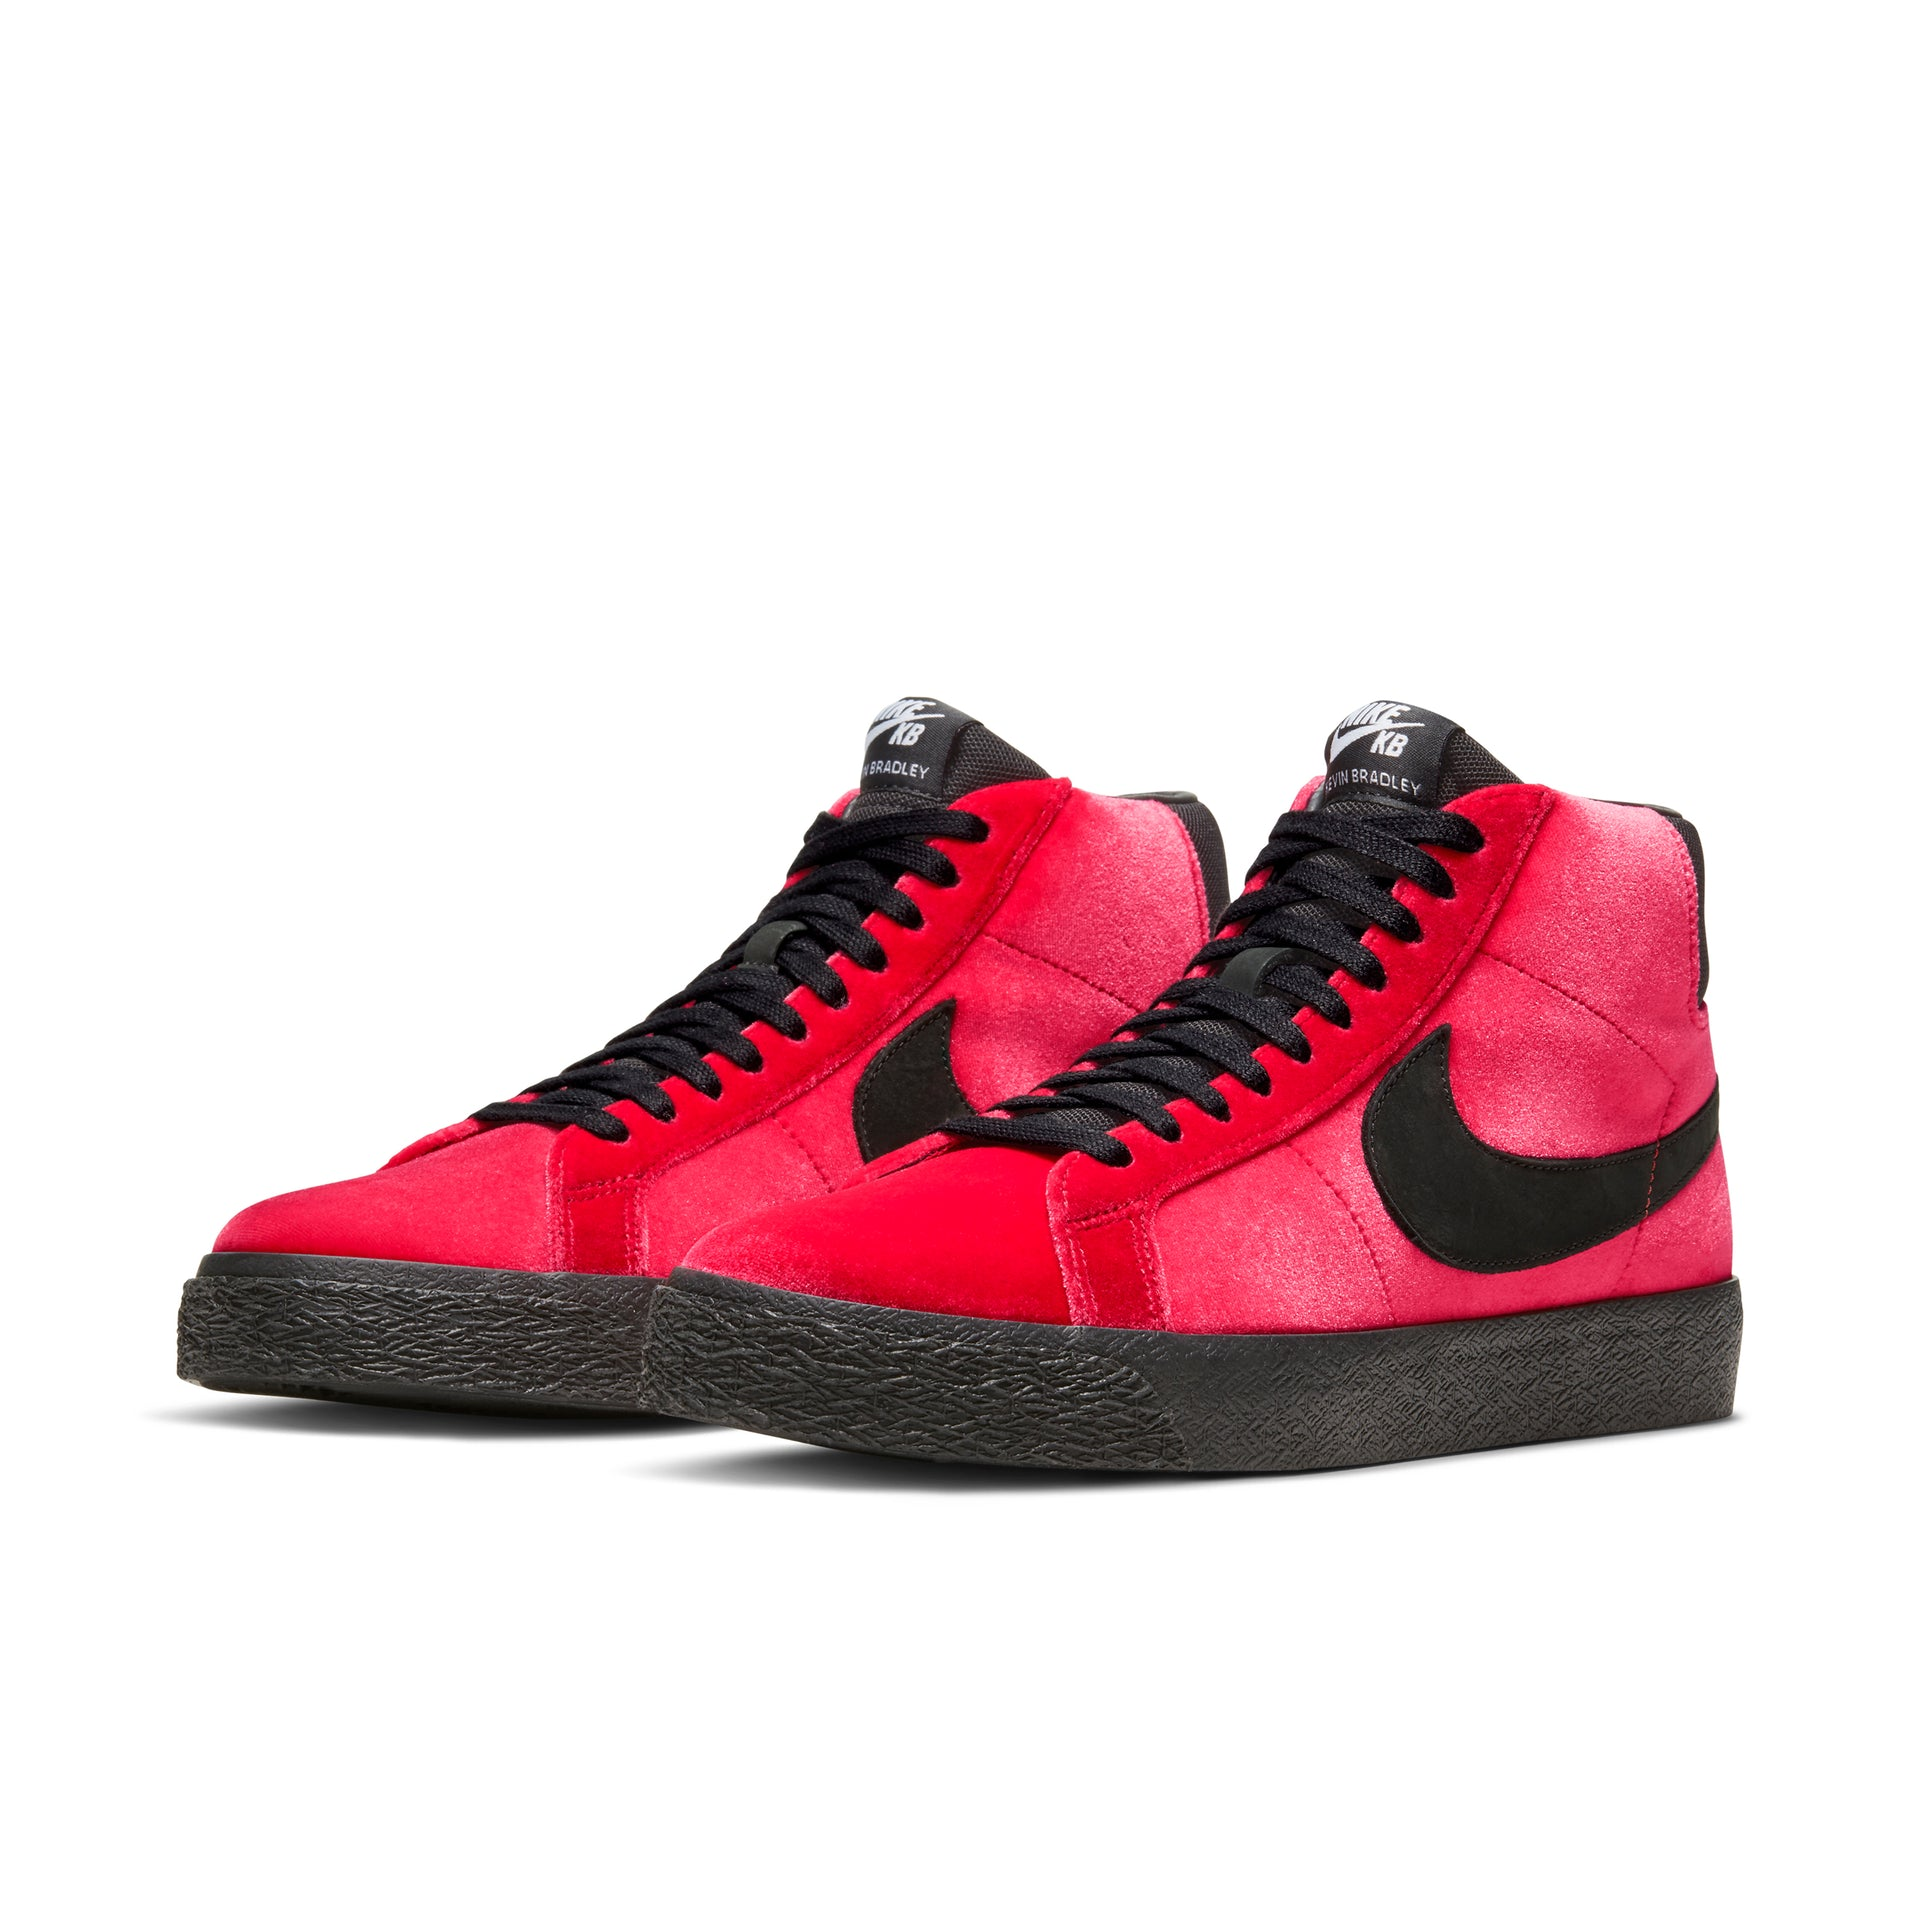 ZOOM BLAZER MID KEVIN BRADLEY ORANGE LABEL